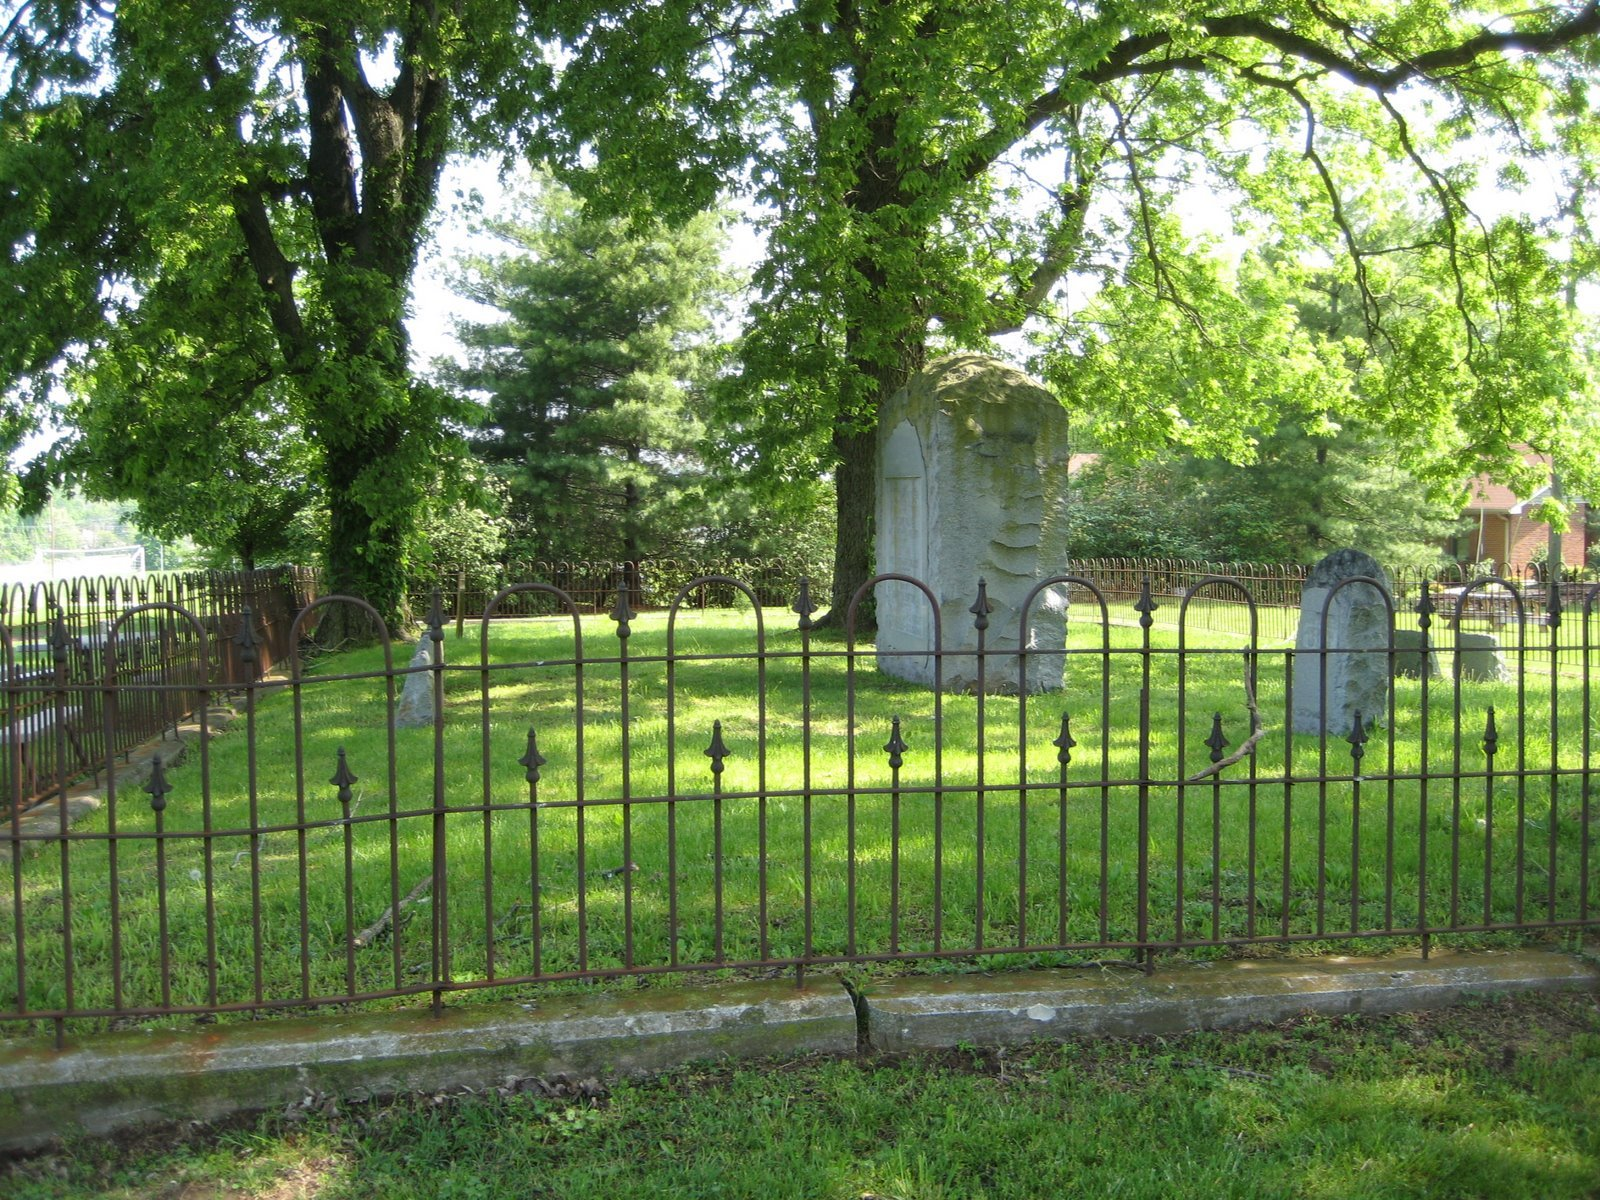 The family cemetery is located approximately five hundred yards from the Mansion on a knoll that overlooks Stone's River bottom land. Credit: Dori & Dick